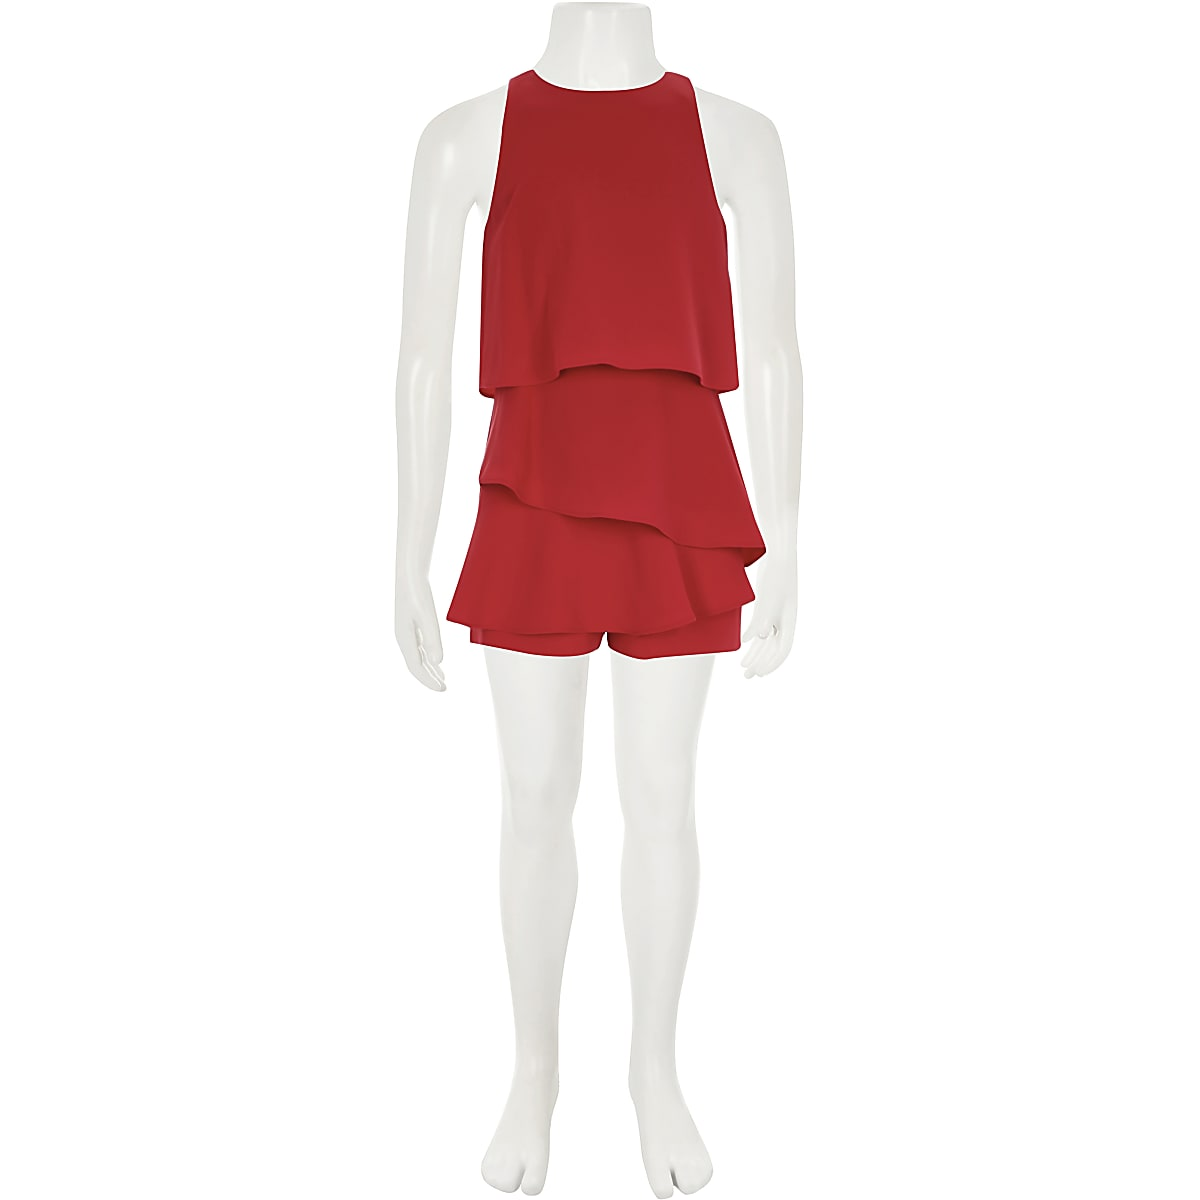 8db4551355a Girls red skort frill playsuit - Playsuits - Playsuits   Jumpsuits ...